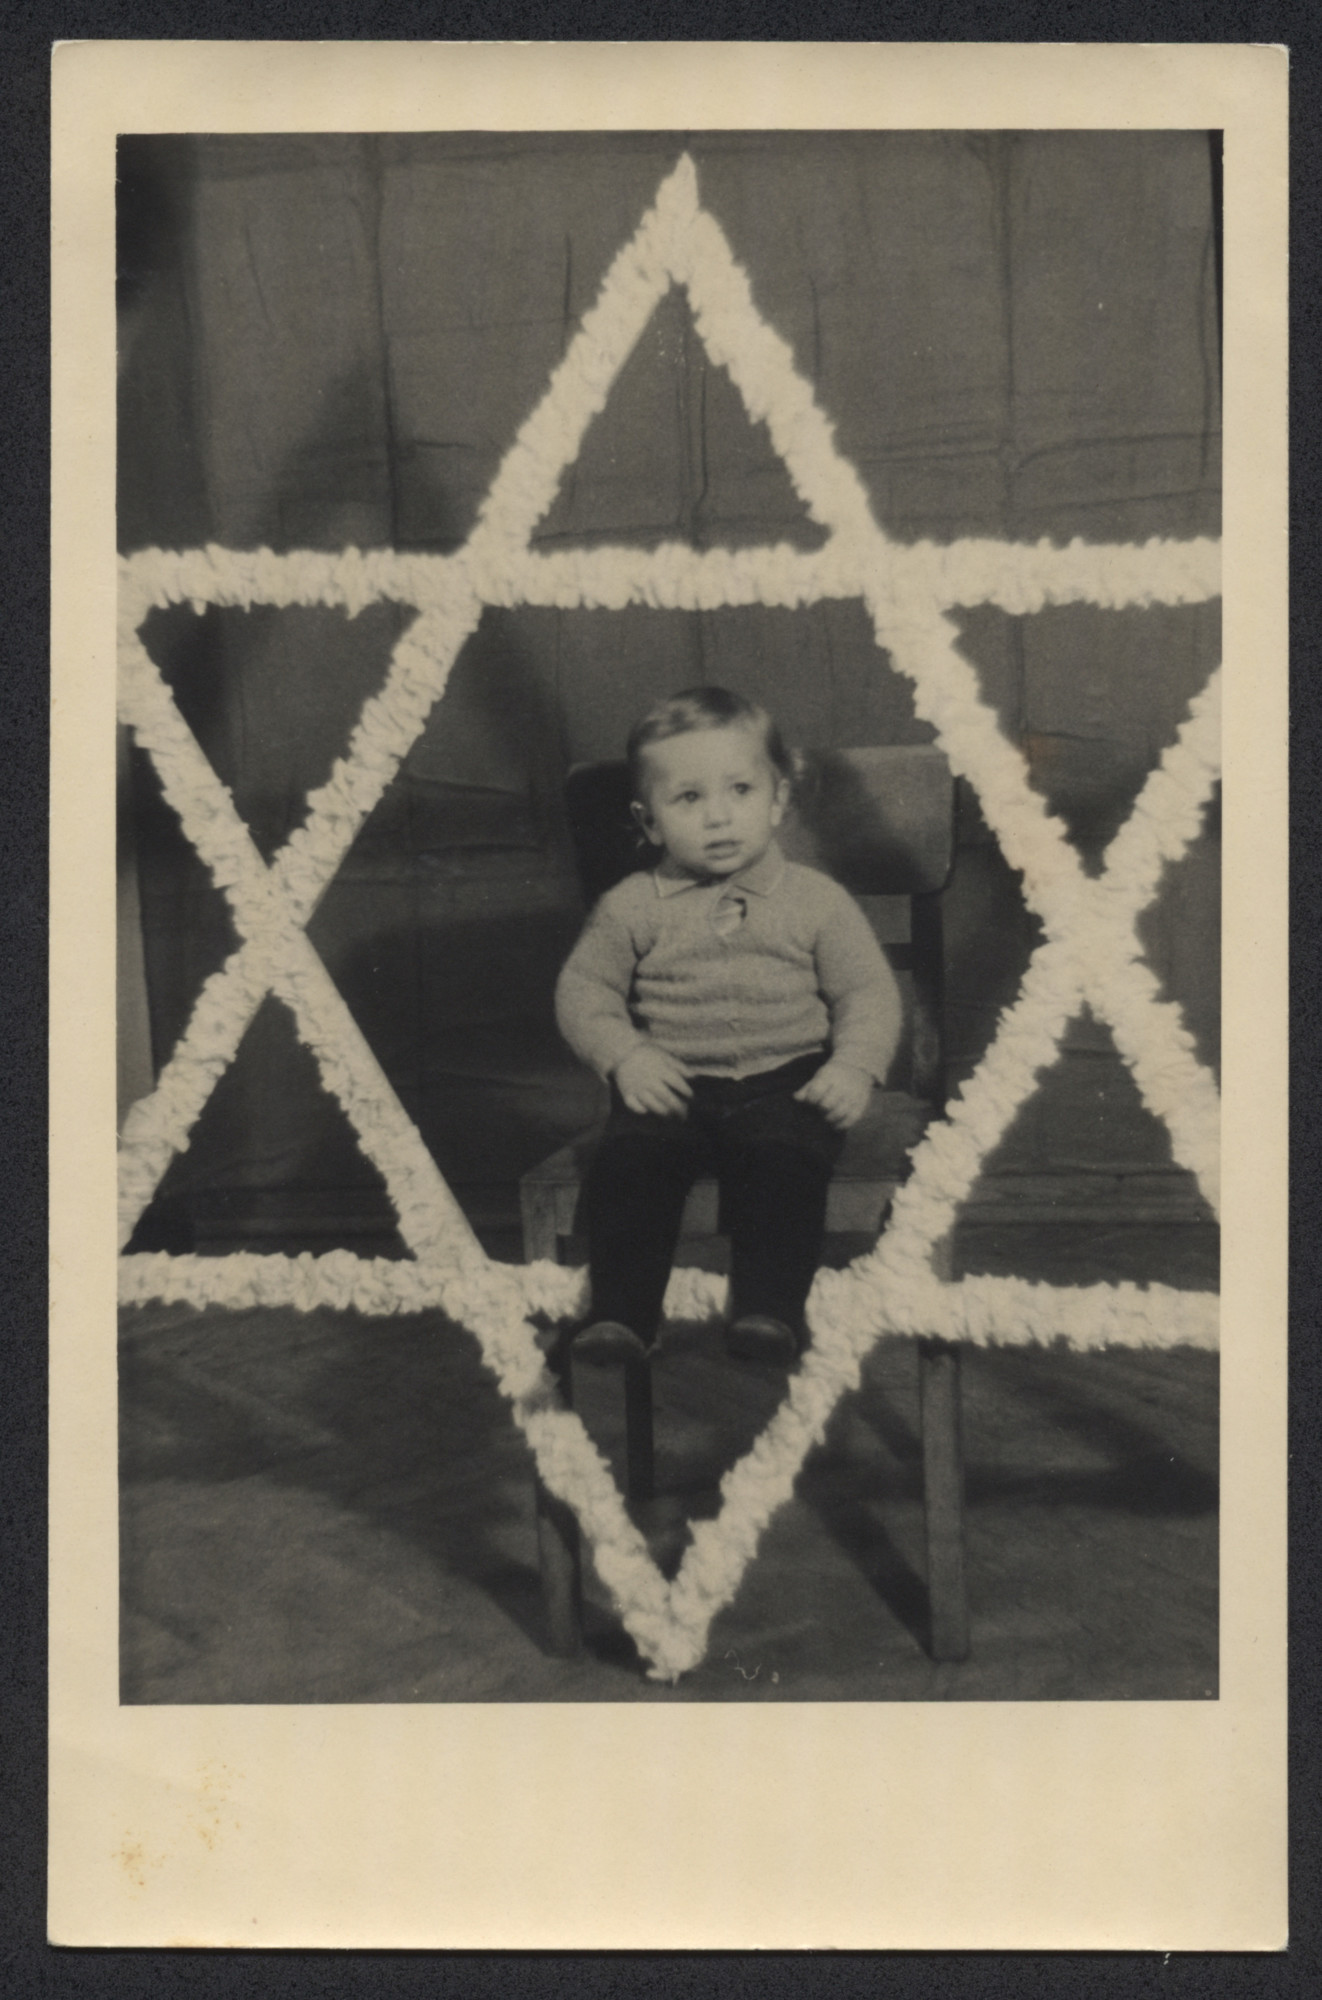 David Greenfield sits in the center of a large Star of David.